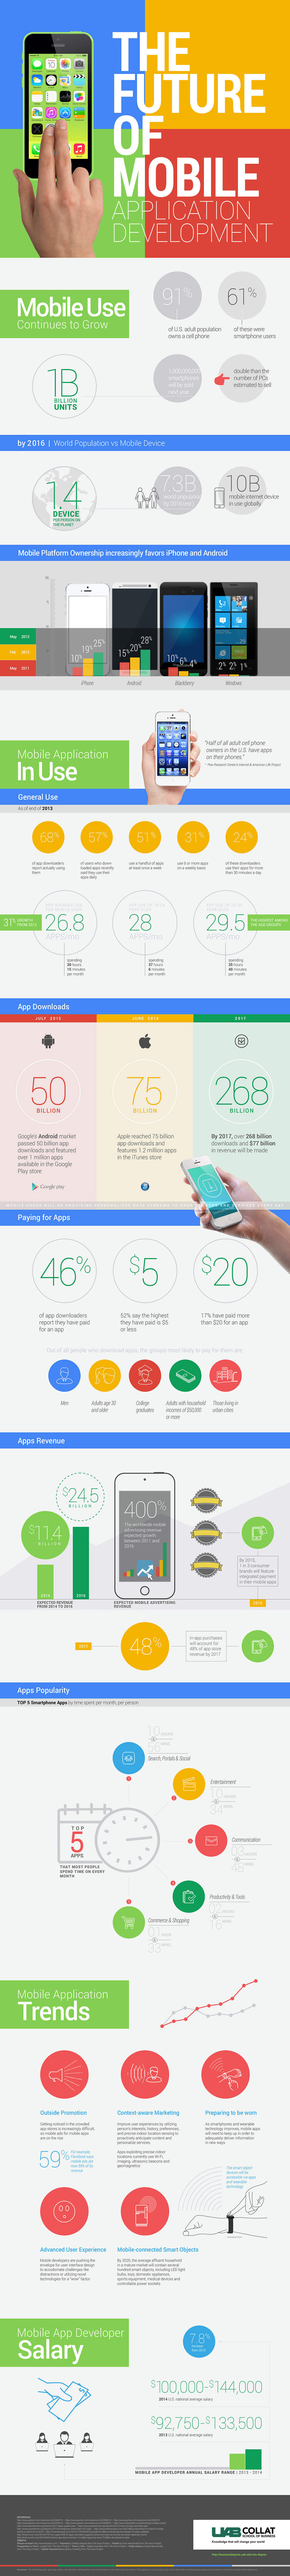 future-mobile-apps-infographic